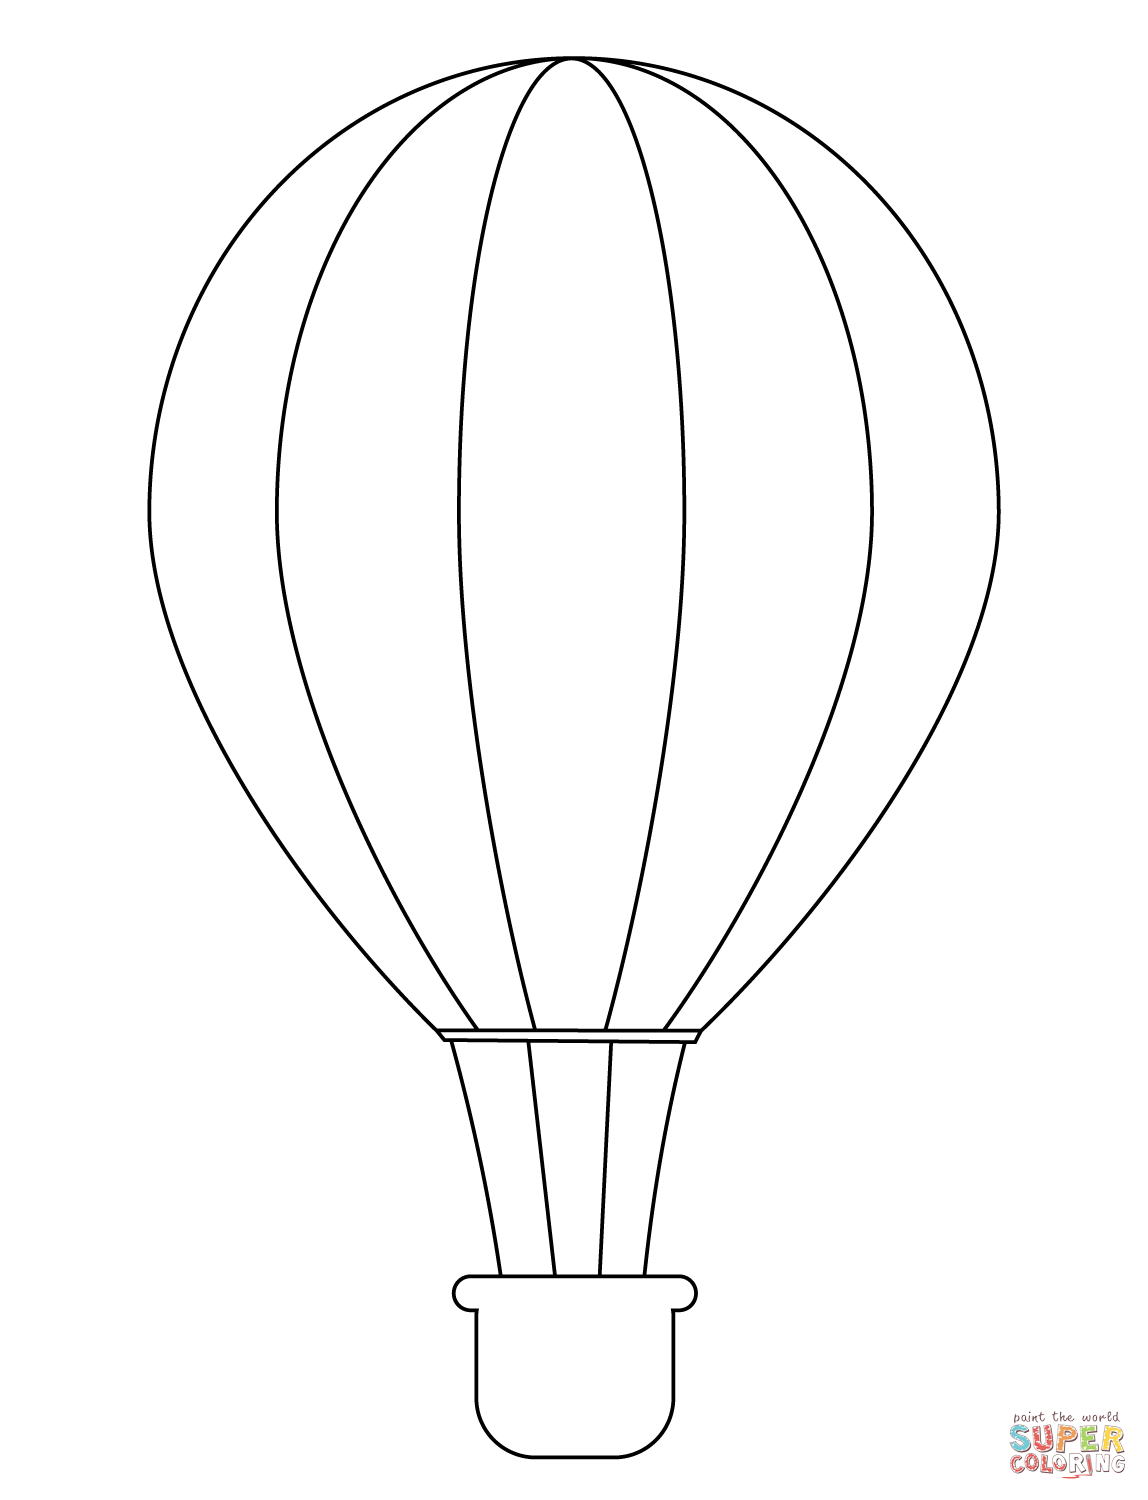 easy hot air balloon drawing hot air balloon drawing free download on clipartmag hot air drawing easy balloon